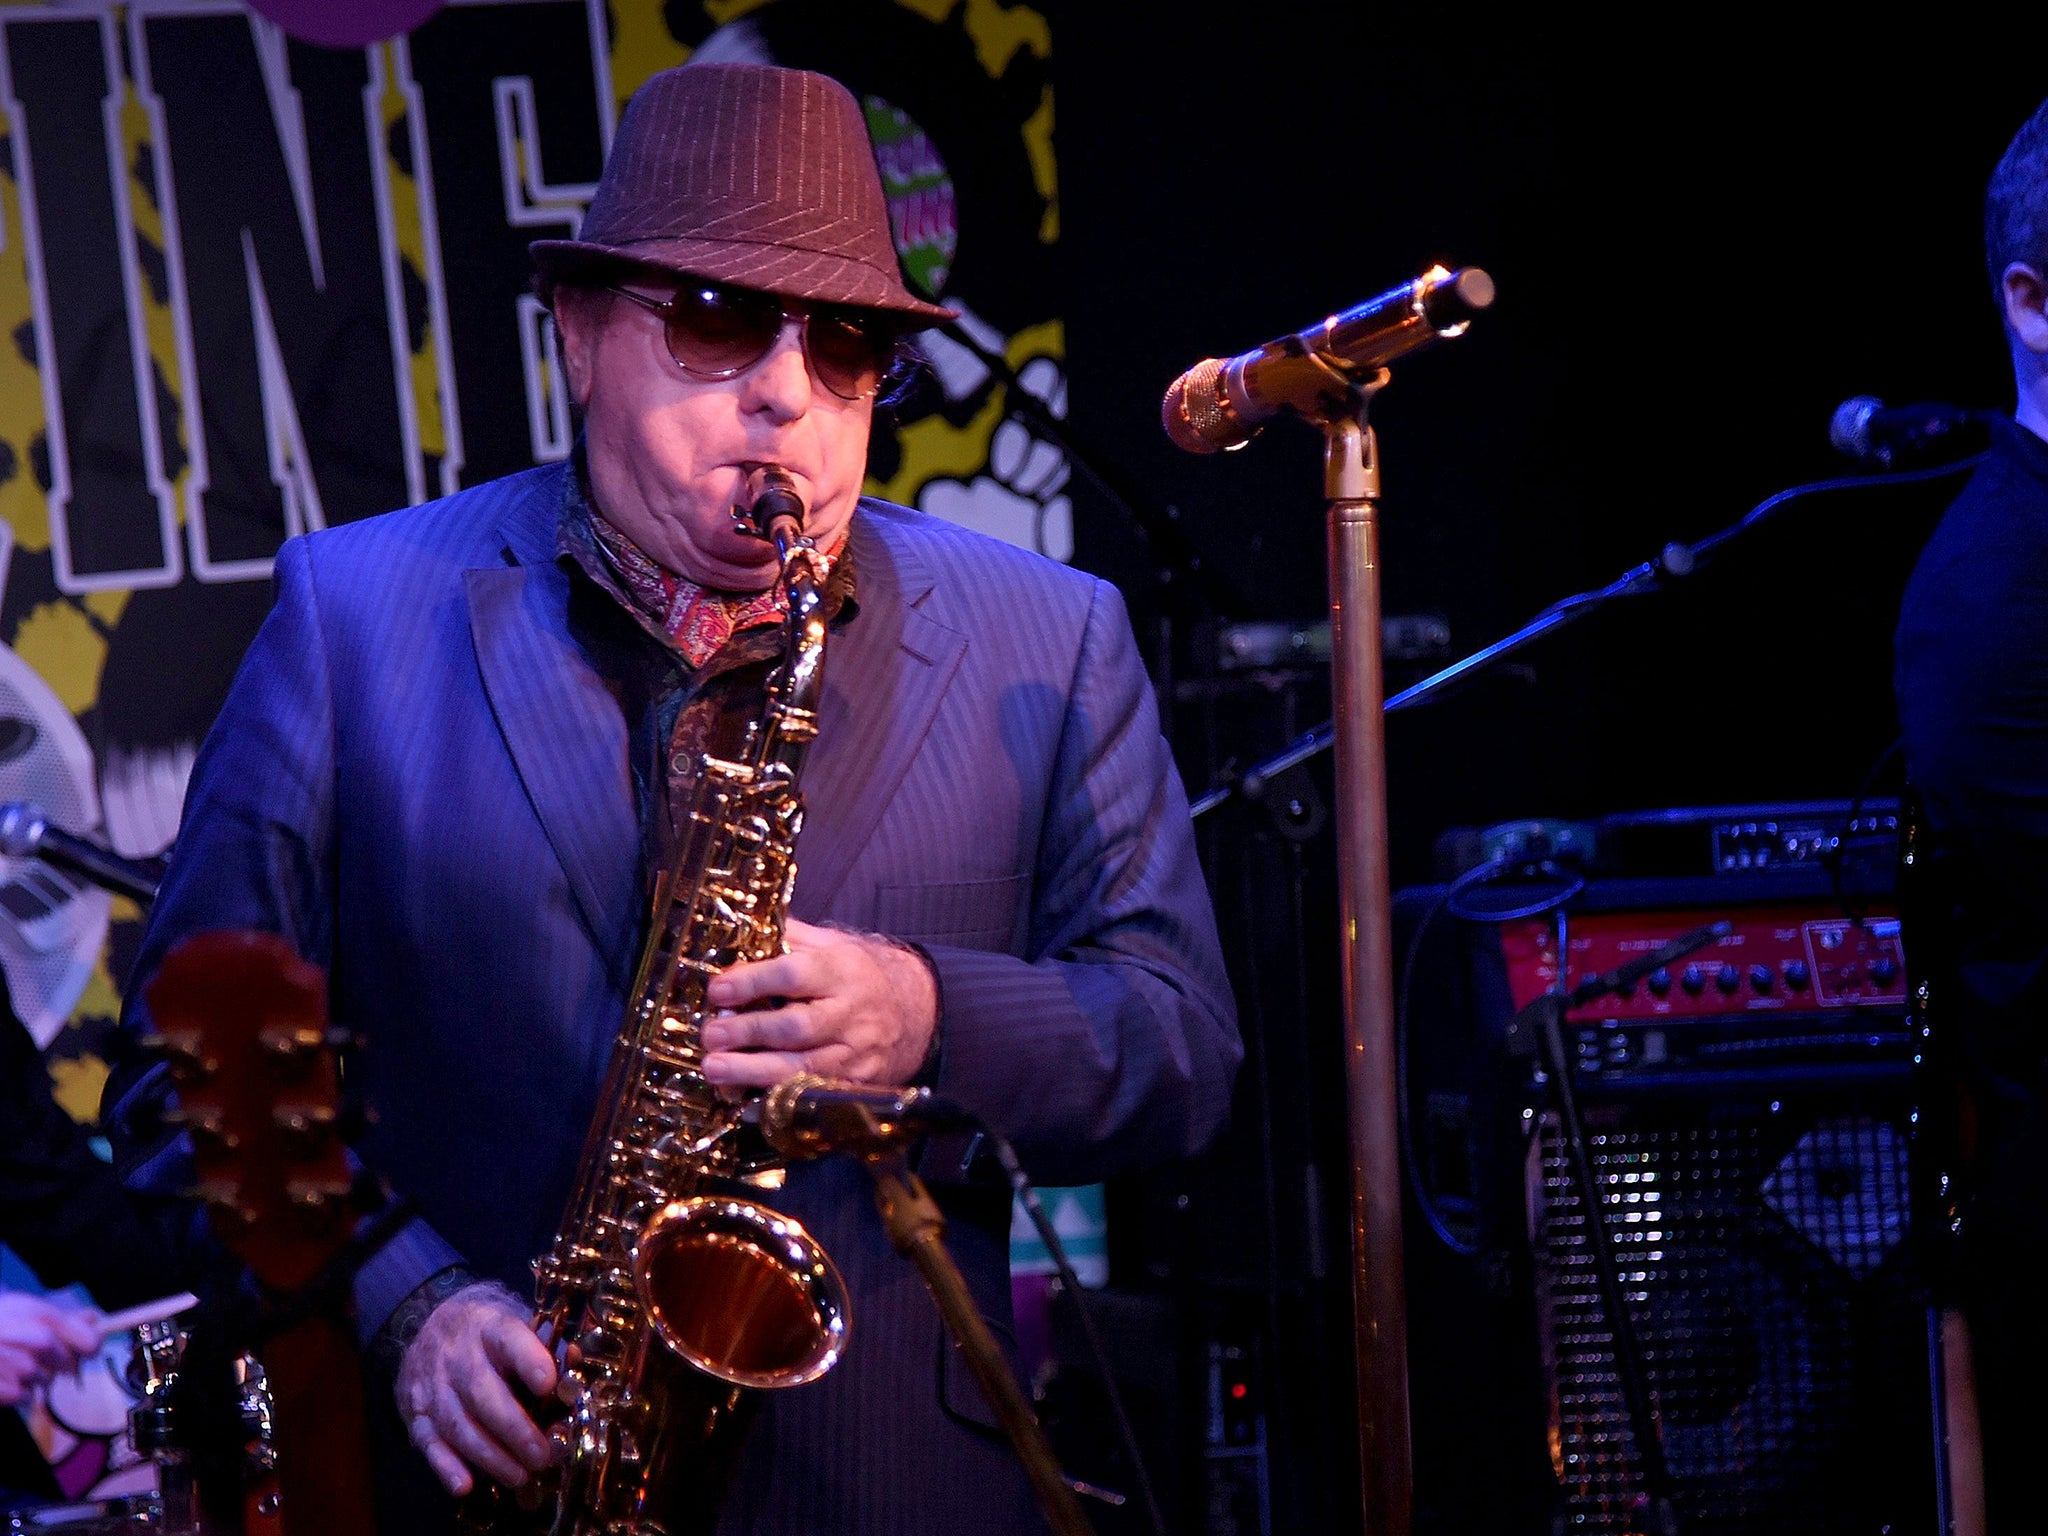 Keep singing his praises: the pain and joy of being a young Van Morrison fan